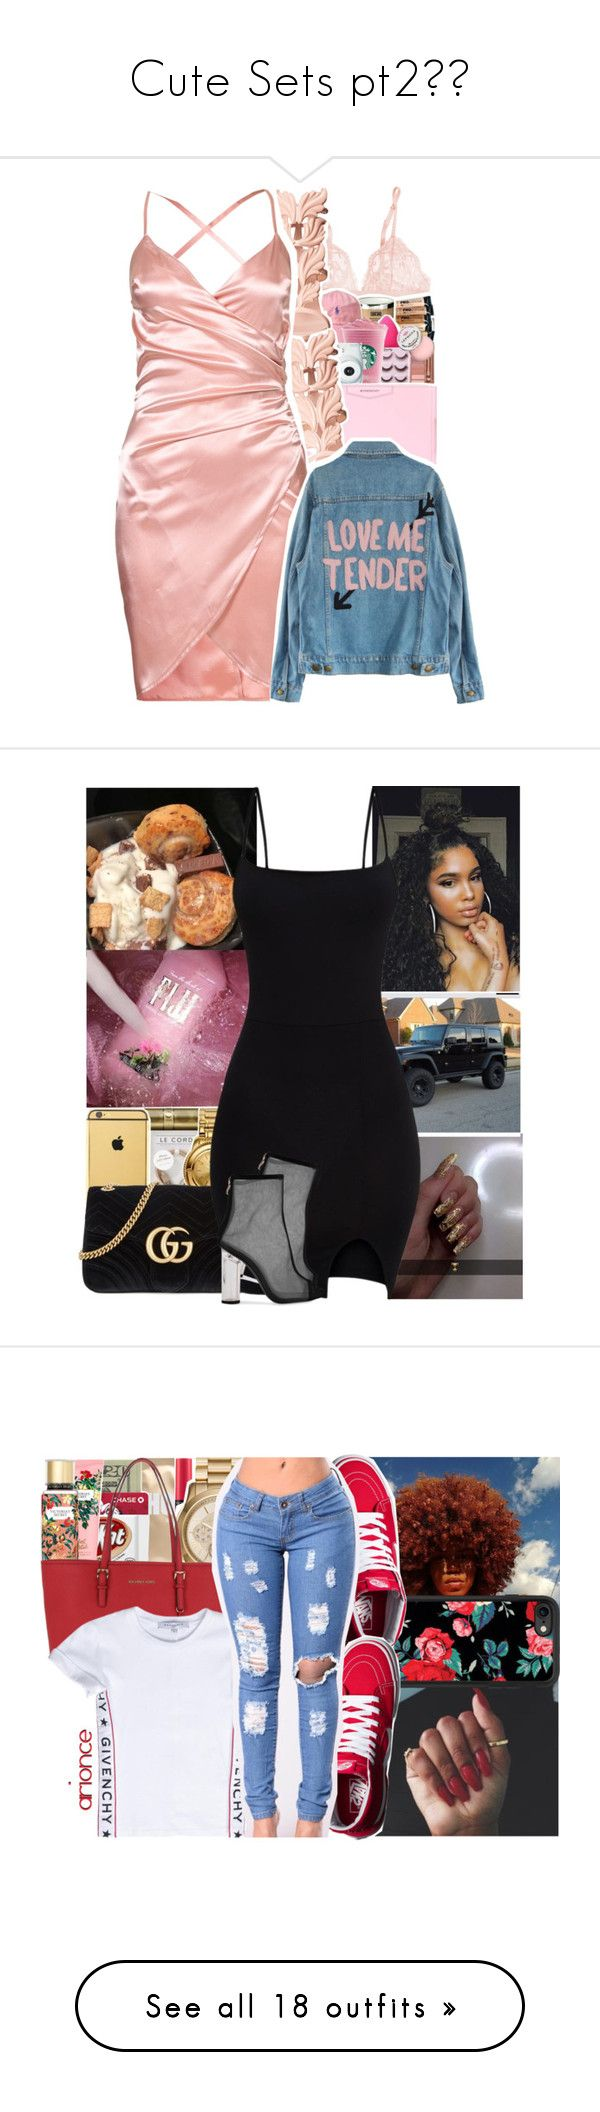 """Cute Sets pt2😍✨"" by slayed-fashion ❤ liked on Polyvore featuring La Perla, Giuseppe Zanotti, Givenchy, Gucci, Lapcos, Victoria's Secret, MICHAEL Michael Kors, Jack Spade, Disney and Casetify"